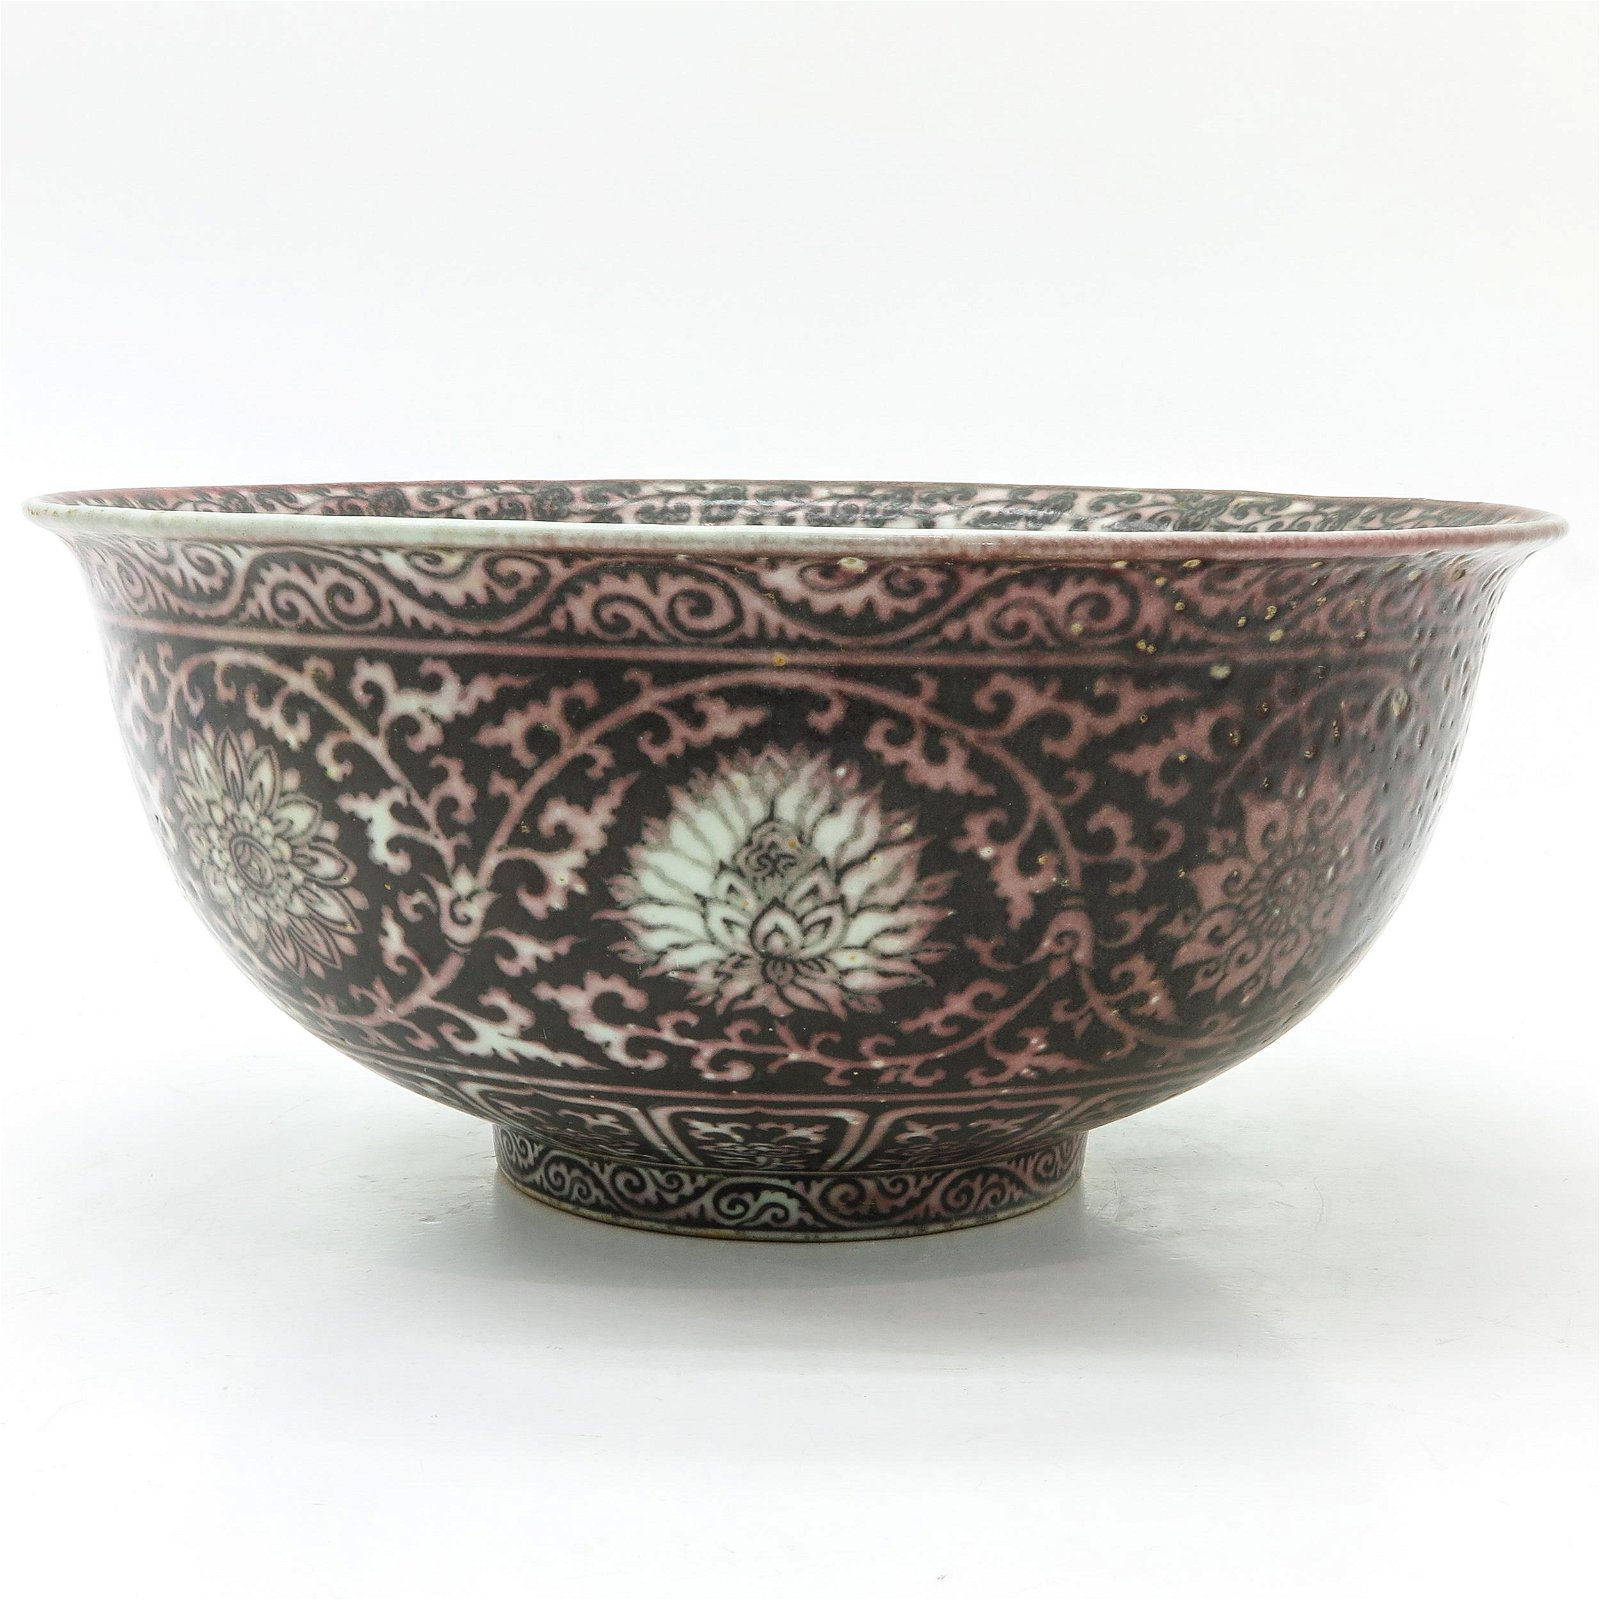 A Large Chinese Bowl